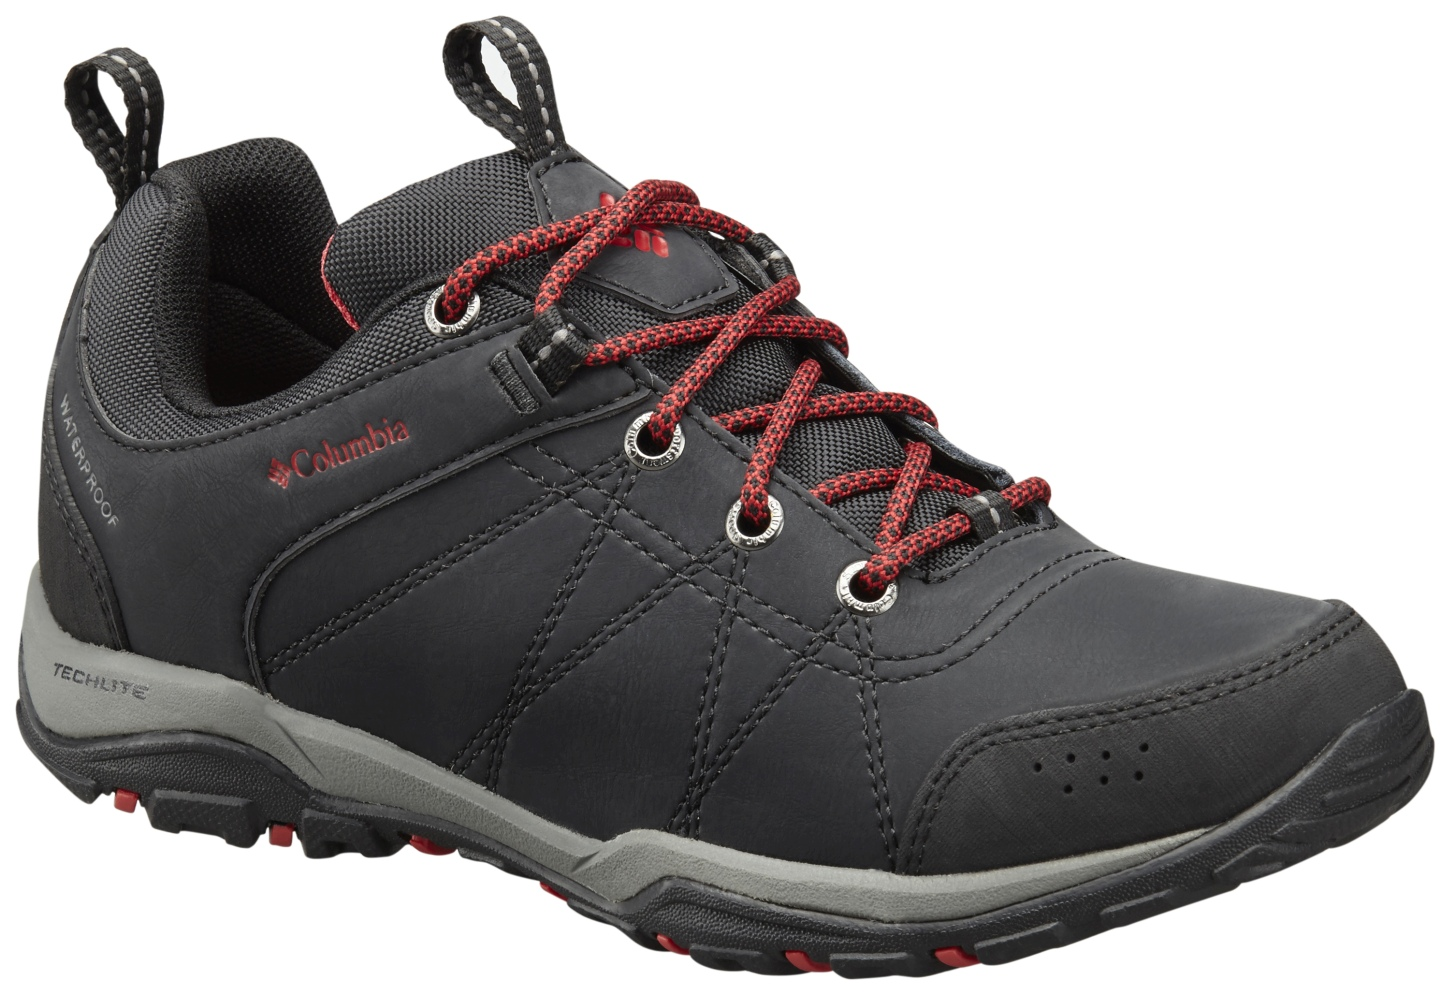 Columbia Women's Fire Venture Low Waterproof Shoes Black, Burnt Henna-30